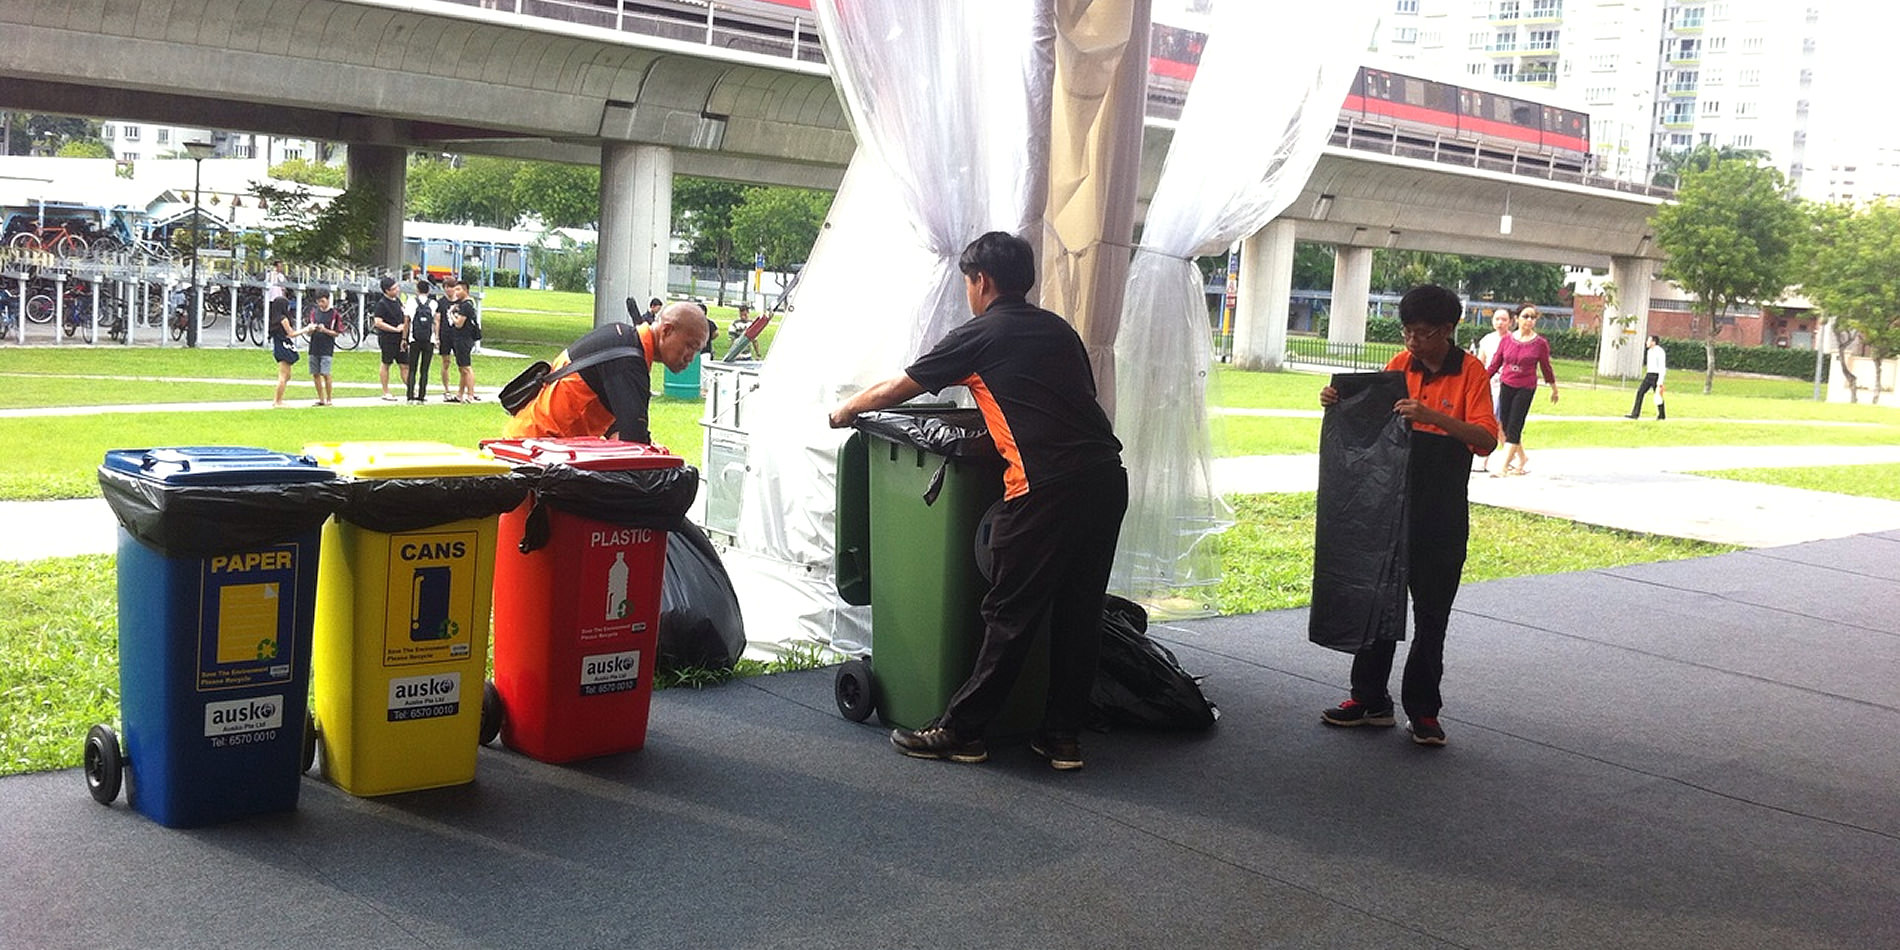 Qool Enviro event cleaning at one of the outdoor events large